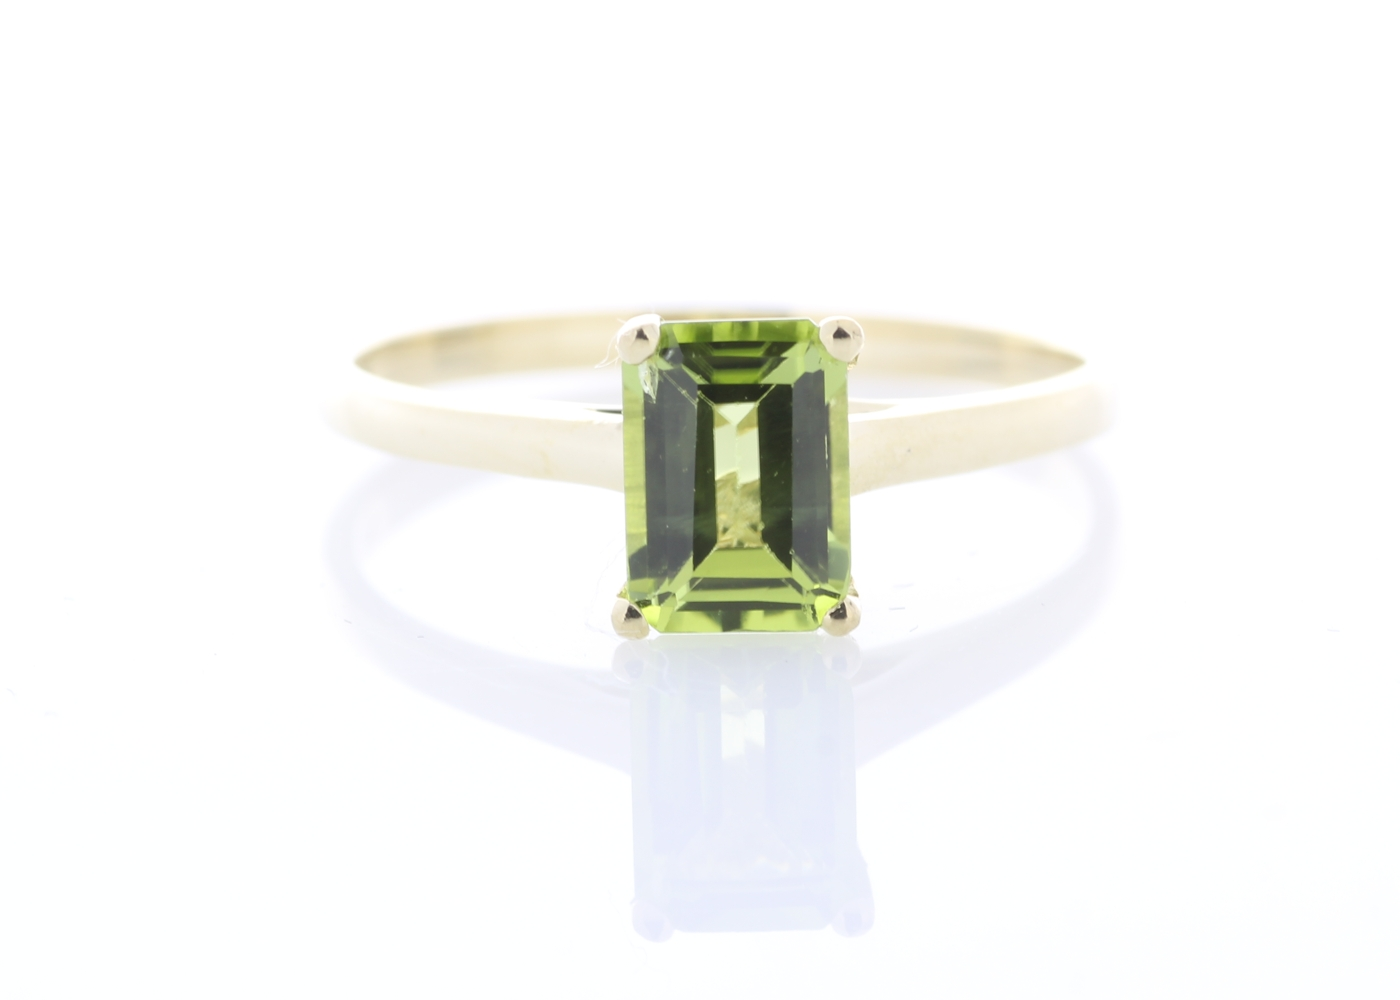 Lot 40 - 9ct Yellow Gold Single Stone Emerald Cut Peridot Ring 0.95 Carats